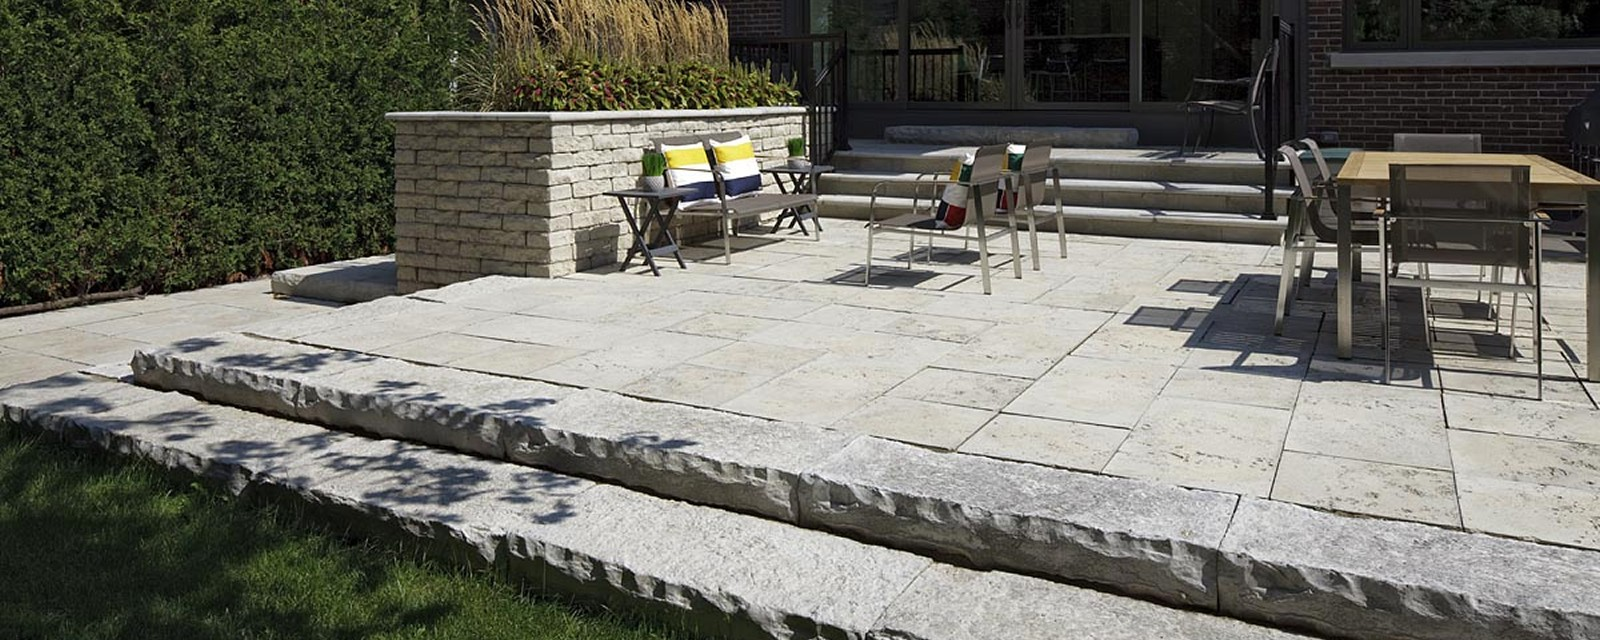 Buff Colour Blend Used To Retain Upper Landing And Transition Between Lower Levels Tuscan Limestone Square Cut Flagstone In Random Sizes For The Patio